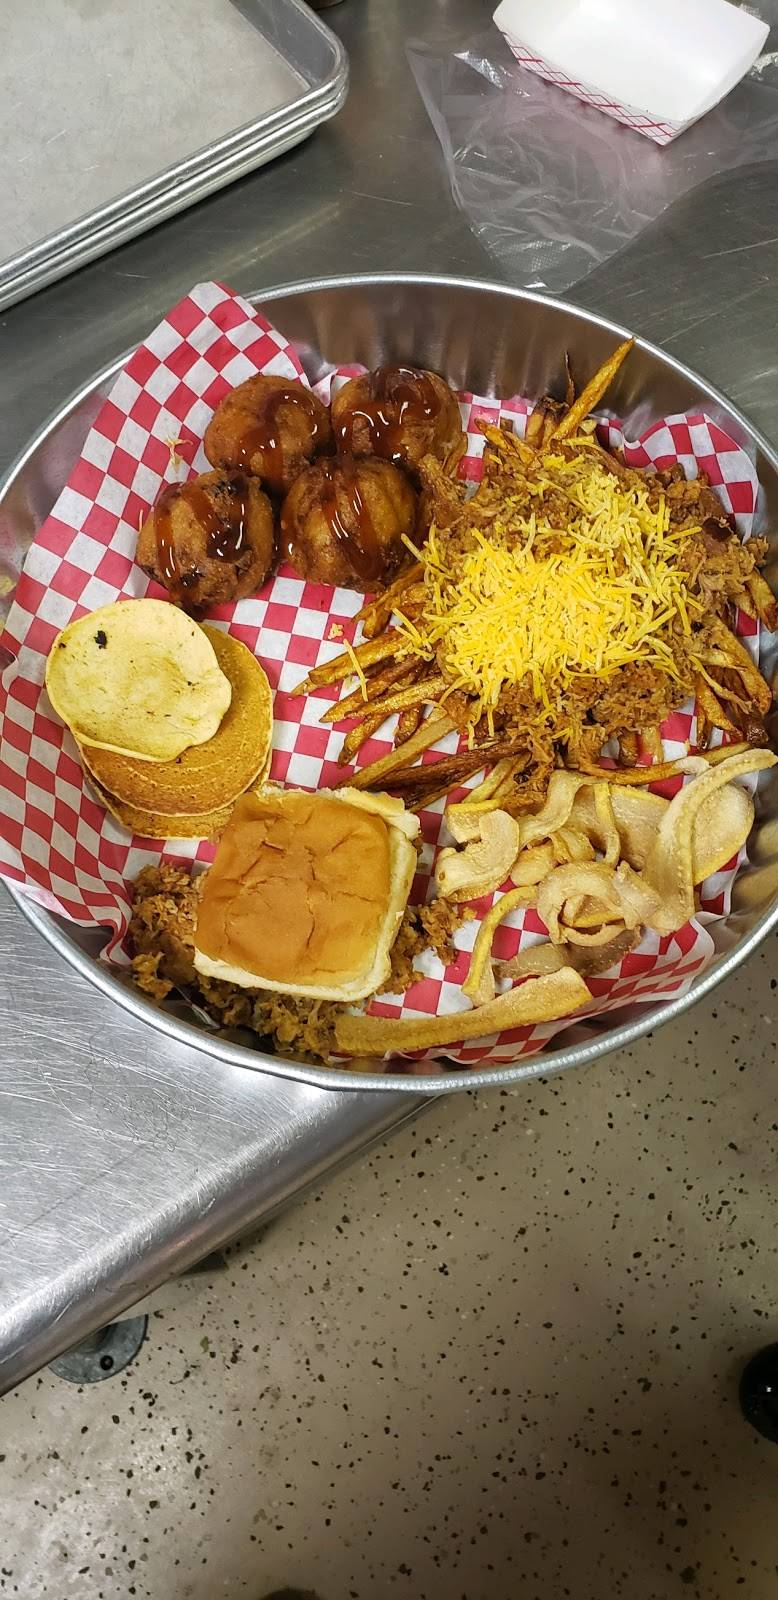 Bellamys BBQ & Country Catering | restaurant | 473 Quinby Plaza Way, Quinby, SC 29506, USA | 8434076107 OR +1 843-407-6107